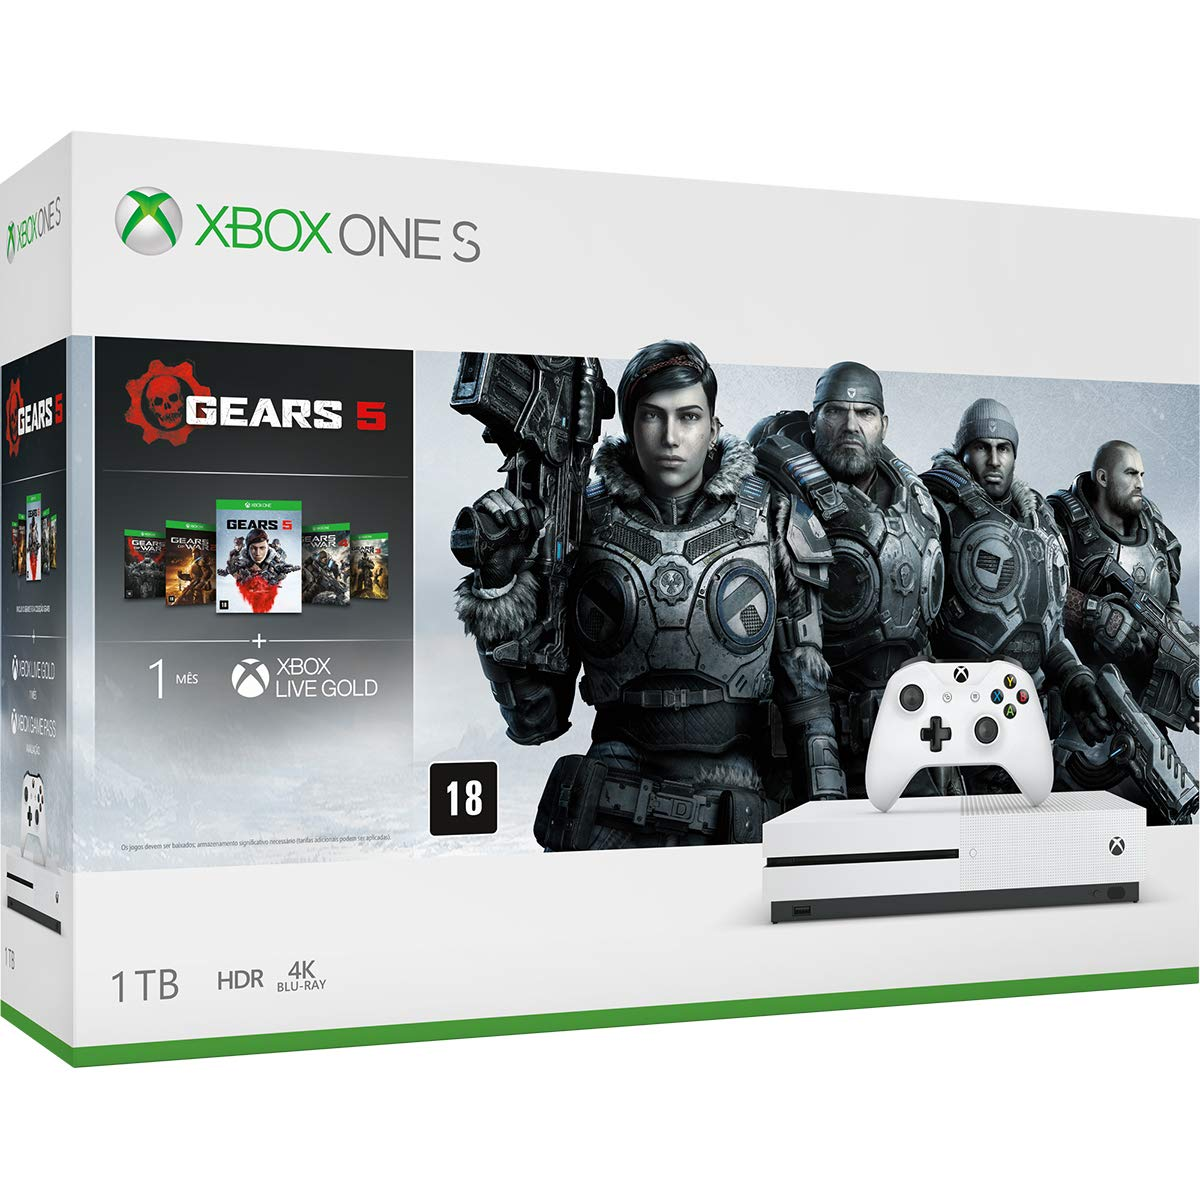 Microsoft Xbox One S 1TB Console - Gears 5 Bundle product image